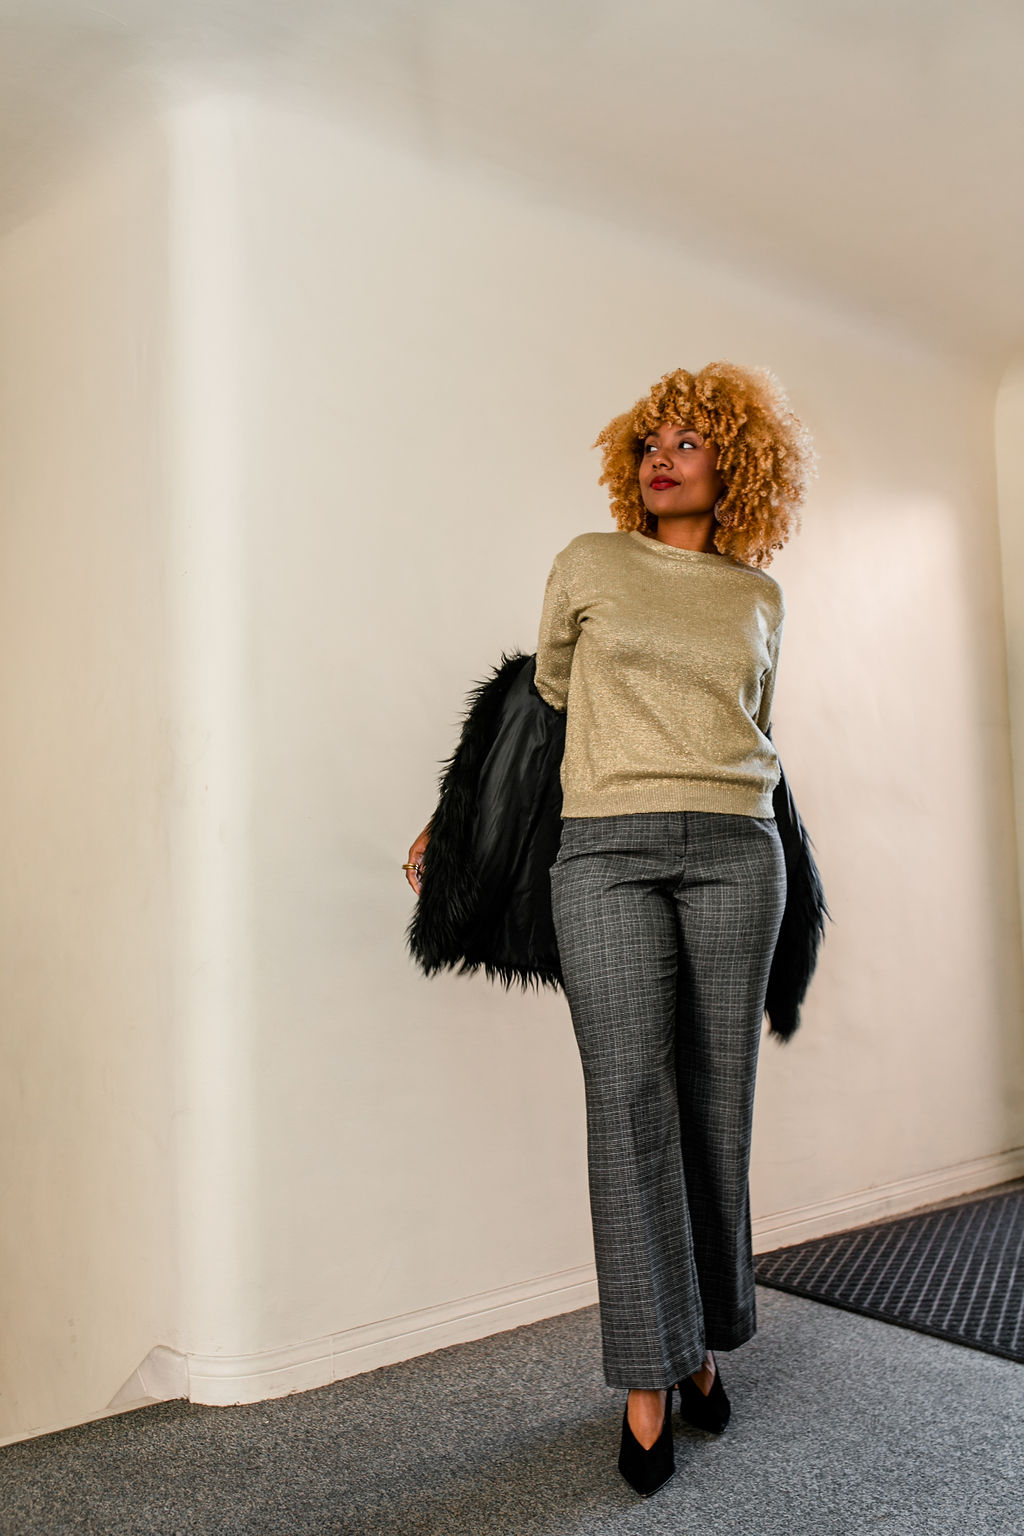 reflect -RSEE-LCM-Liveclothesminded-xmmtt-longbeach-2219-wear who you are-slacks-gold sweater-blonde curls-how to wear slacks-7 big moments- faux fur vest